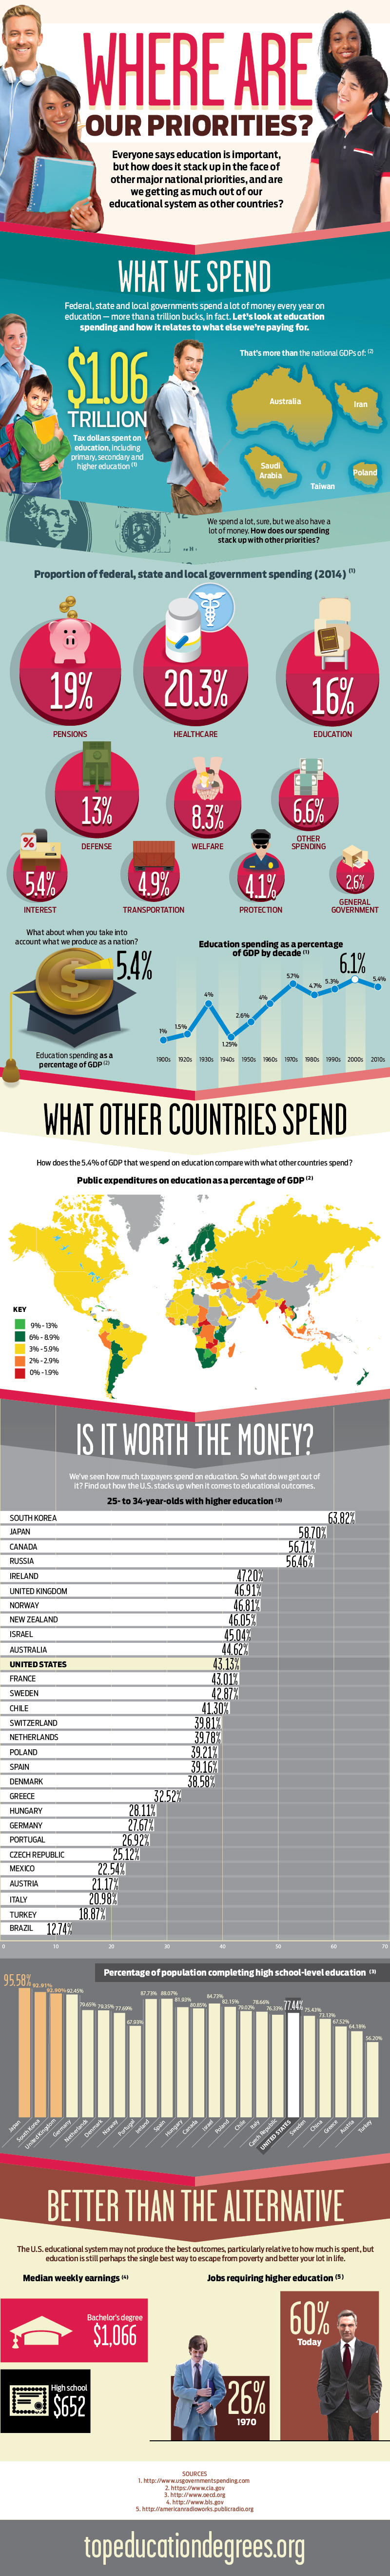 Education Spending: Where Are Our Priorities?